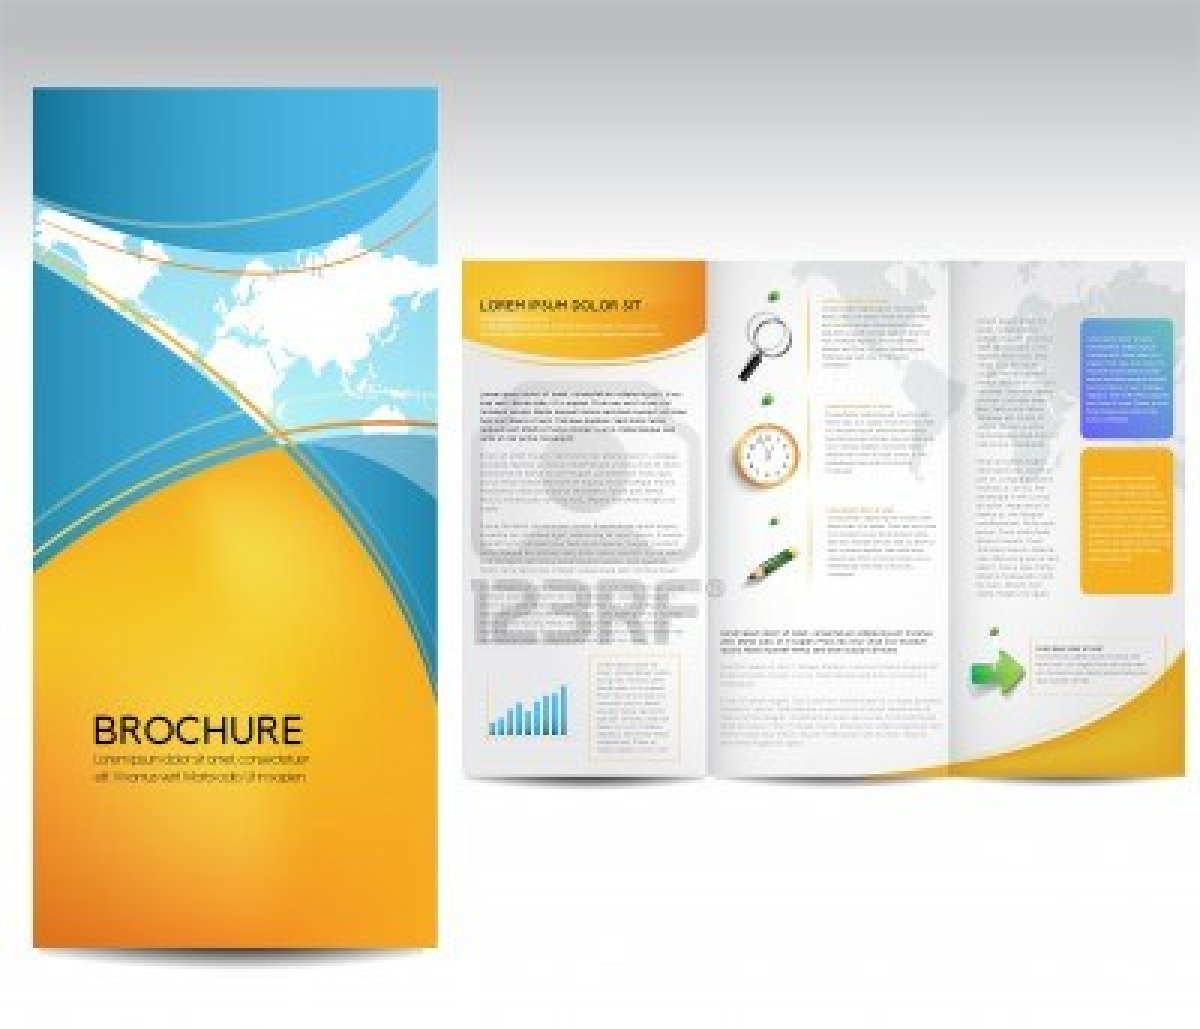 Catalogue design templates free images Blueprint designer free